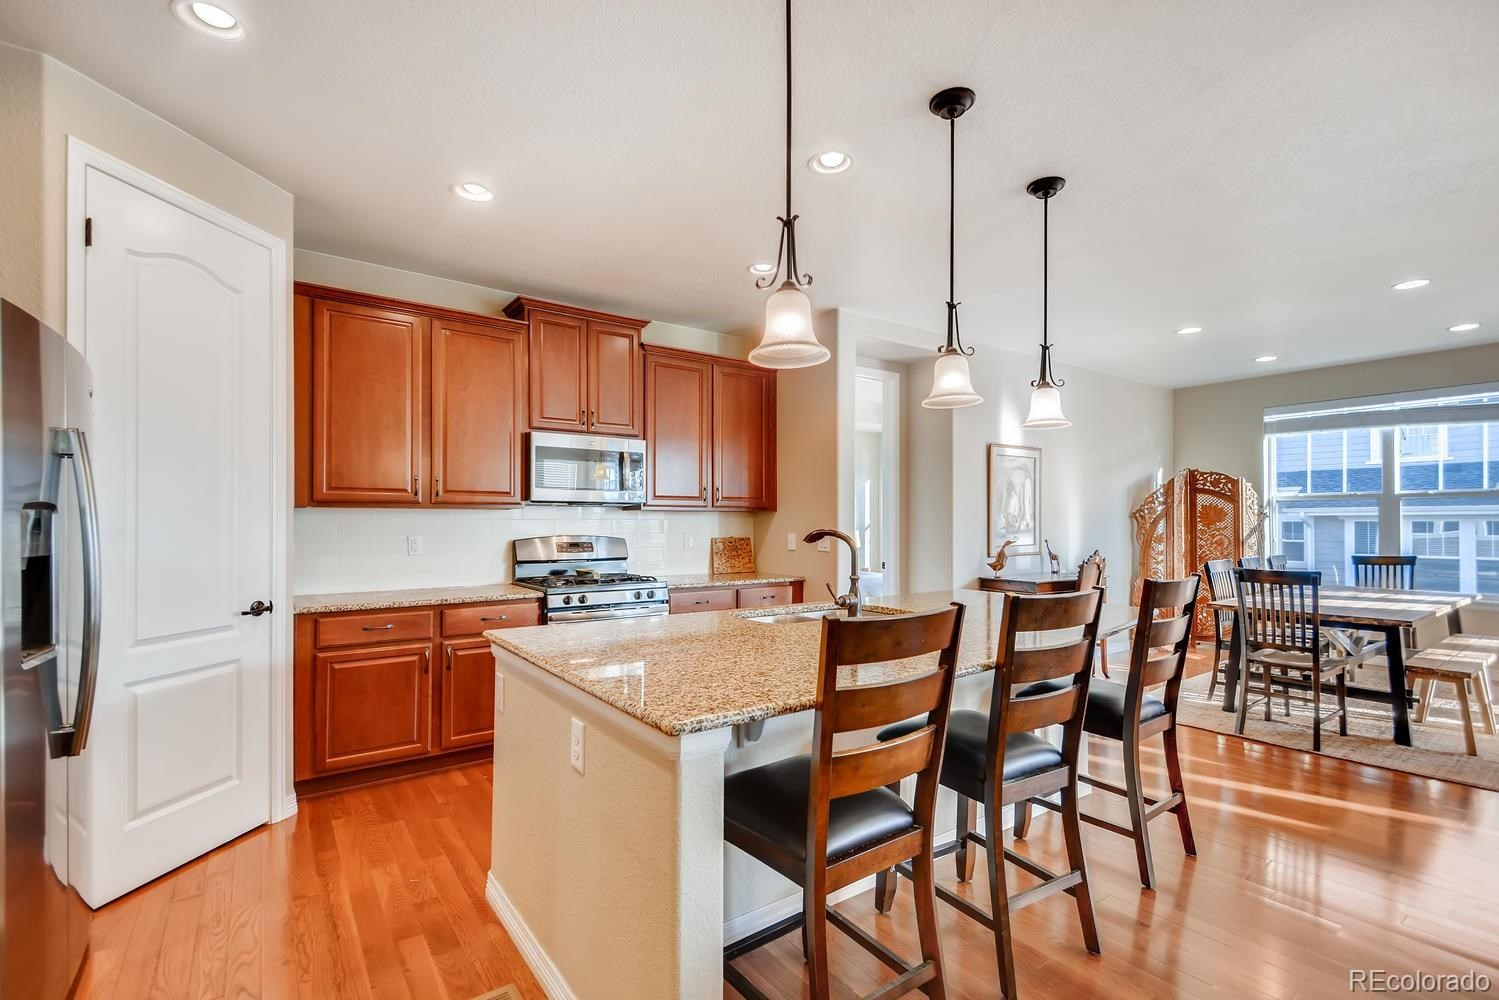 MLS# 9346696 - 7 - 22888 E Saratoga Place, Aurora, CO 80015